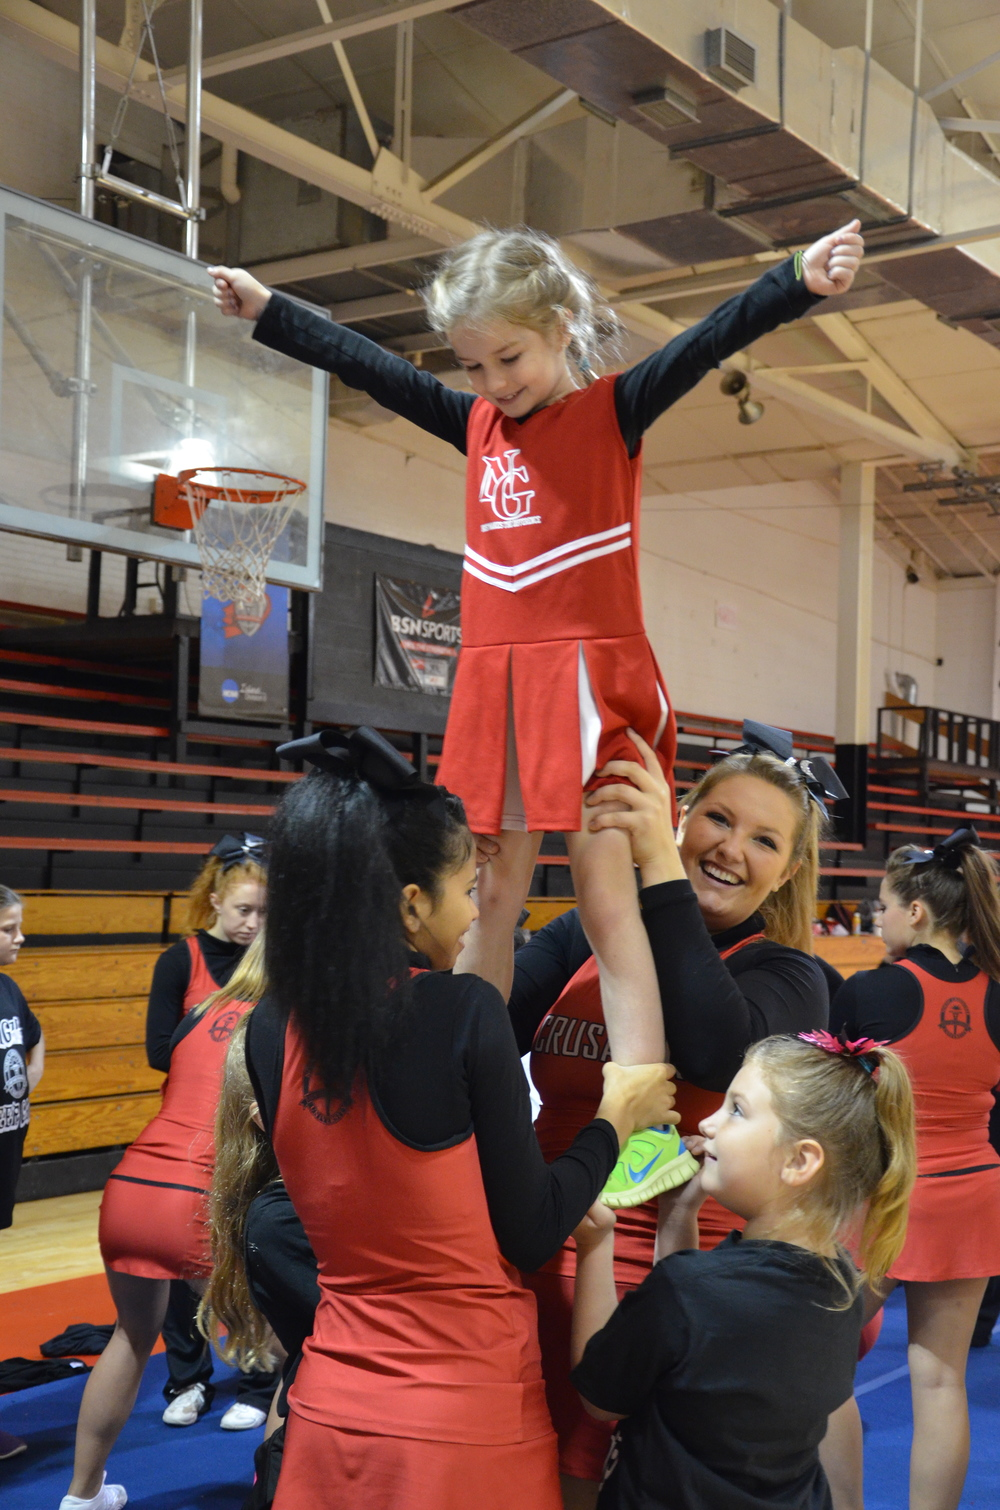 A little girl getting big help to be like the cheerleaders